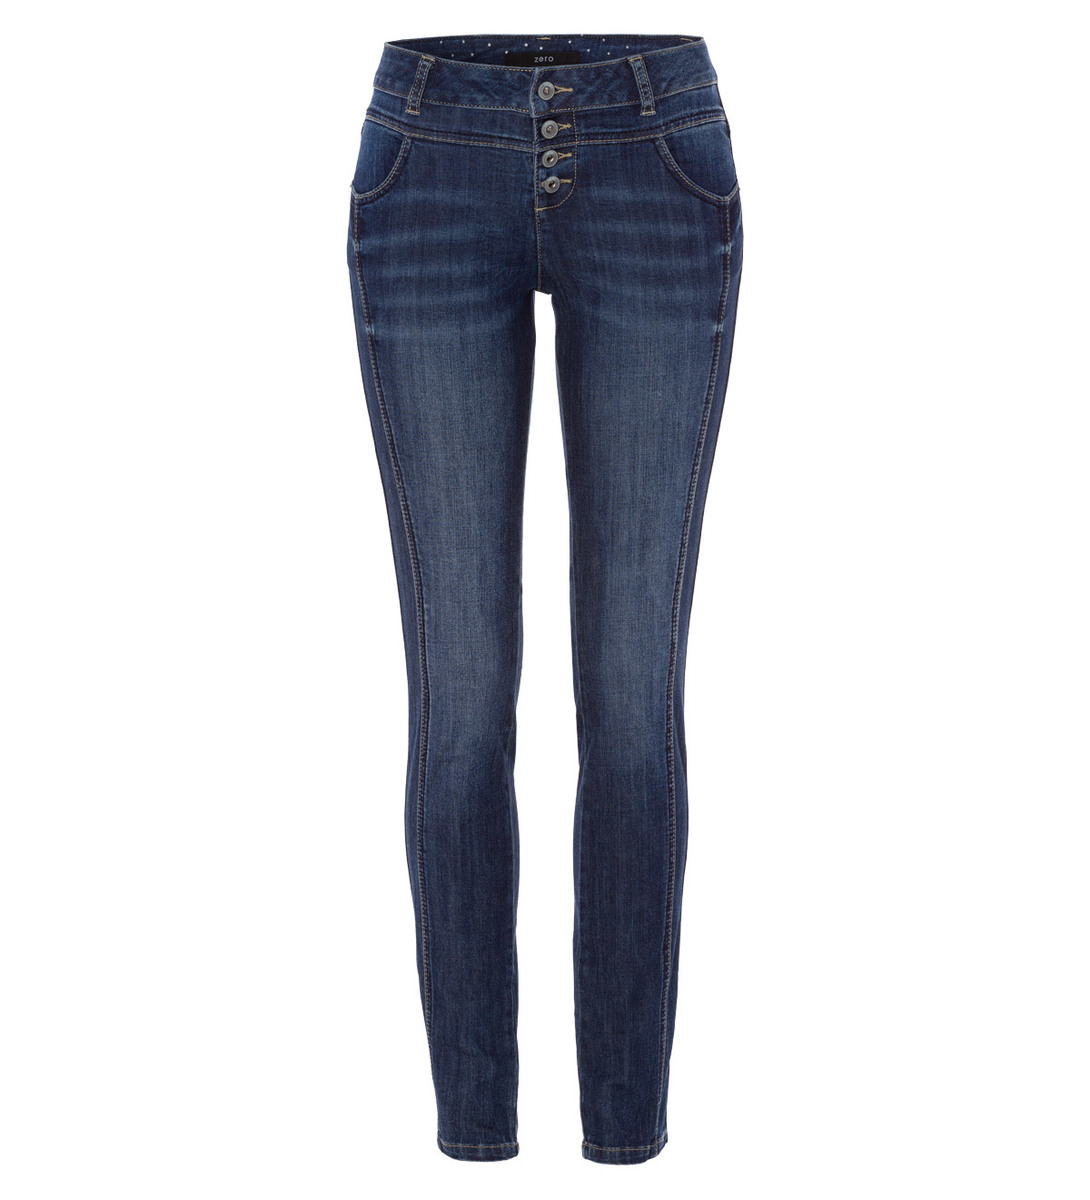 Jeans Orlando 32 Inch in mid blue soft wash details